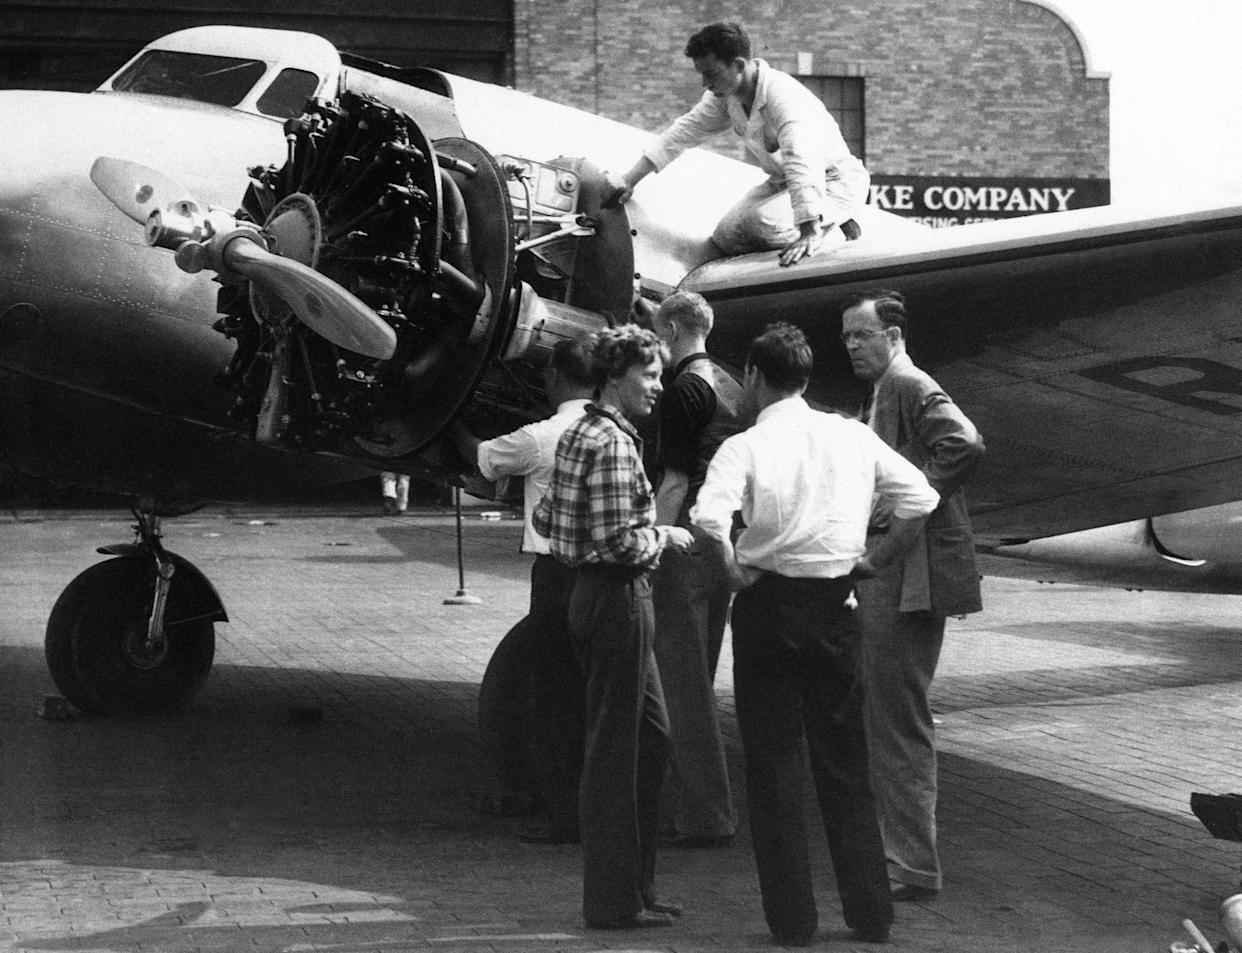 FILE - In this Sept. 4, 1936 file photo, Amelia Earhart is talking with her husband George Palmer Putnam, right, and friends in New York, before taking off from Brooklyn's Floyd Bennett field for Los Angeles in the Bendix Trophy race. Floyd Bennett Field was built between 1928 and 1931 and quickly became the preferred launching site for record-setting flights by Howard Hughes, Earhart, Wiley Post and other aviation pioneers. The Navy took over the airport in 1941 and most of the airport closed for good in 1971, but the New York Police Department still uses a corner of it as its helicopter base. (AP Photo, File)